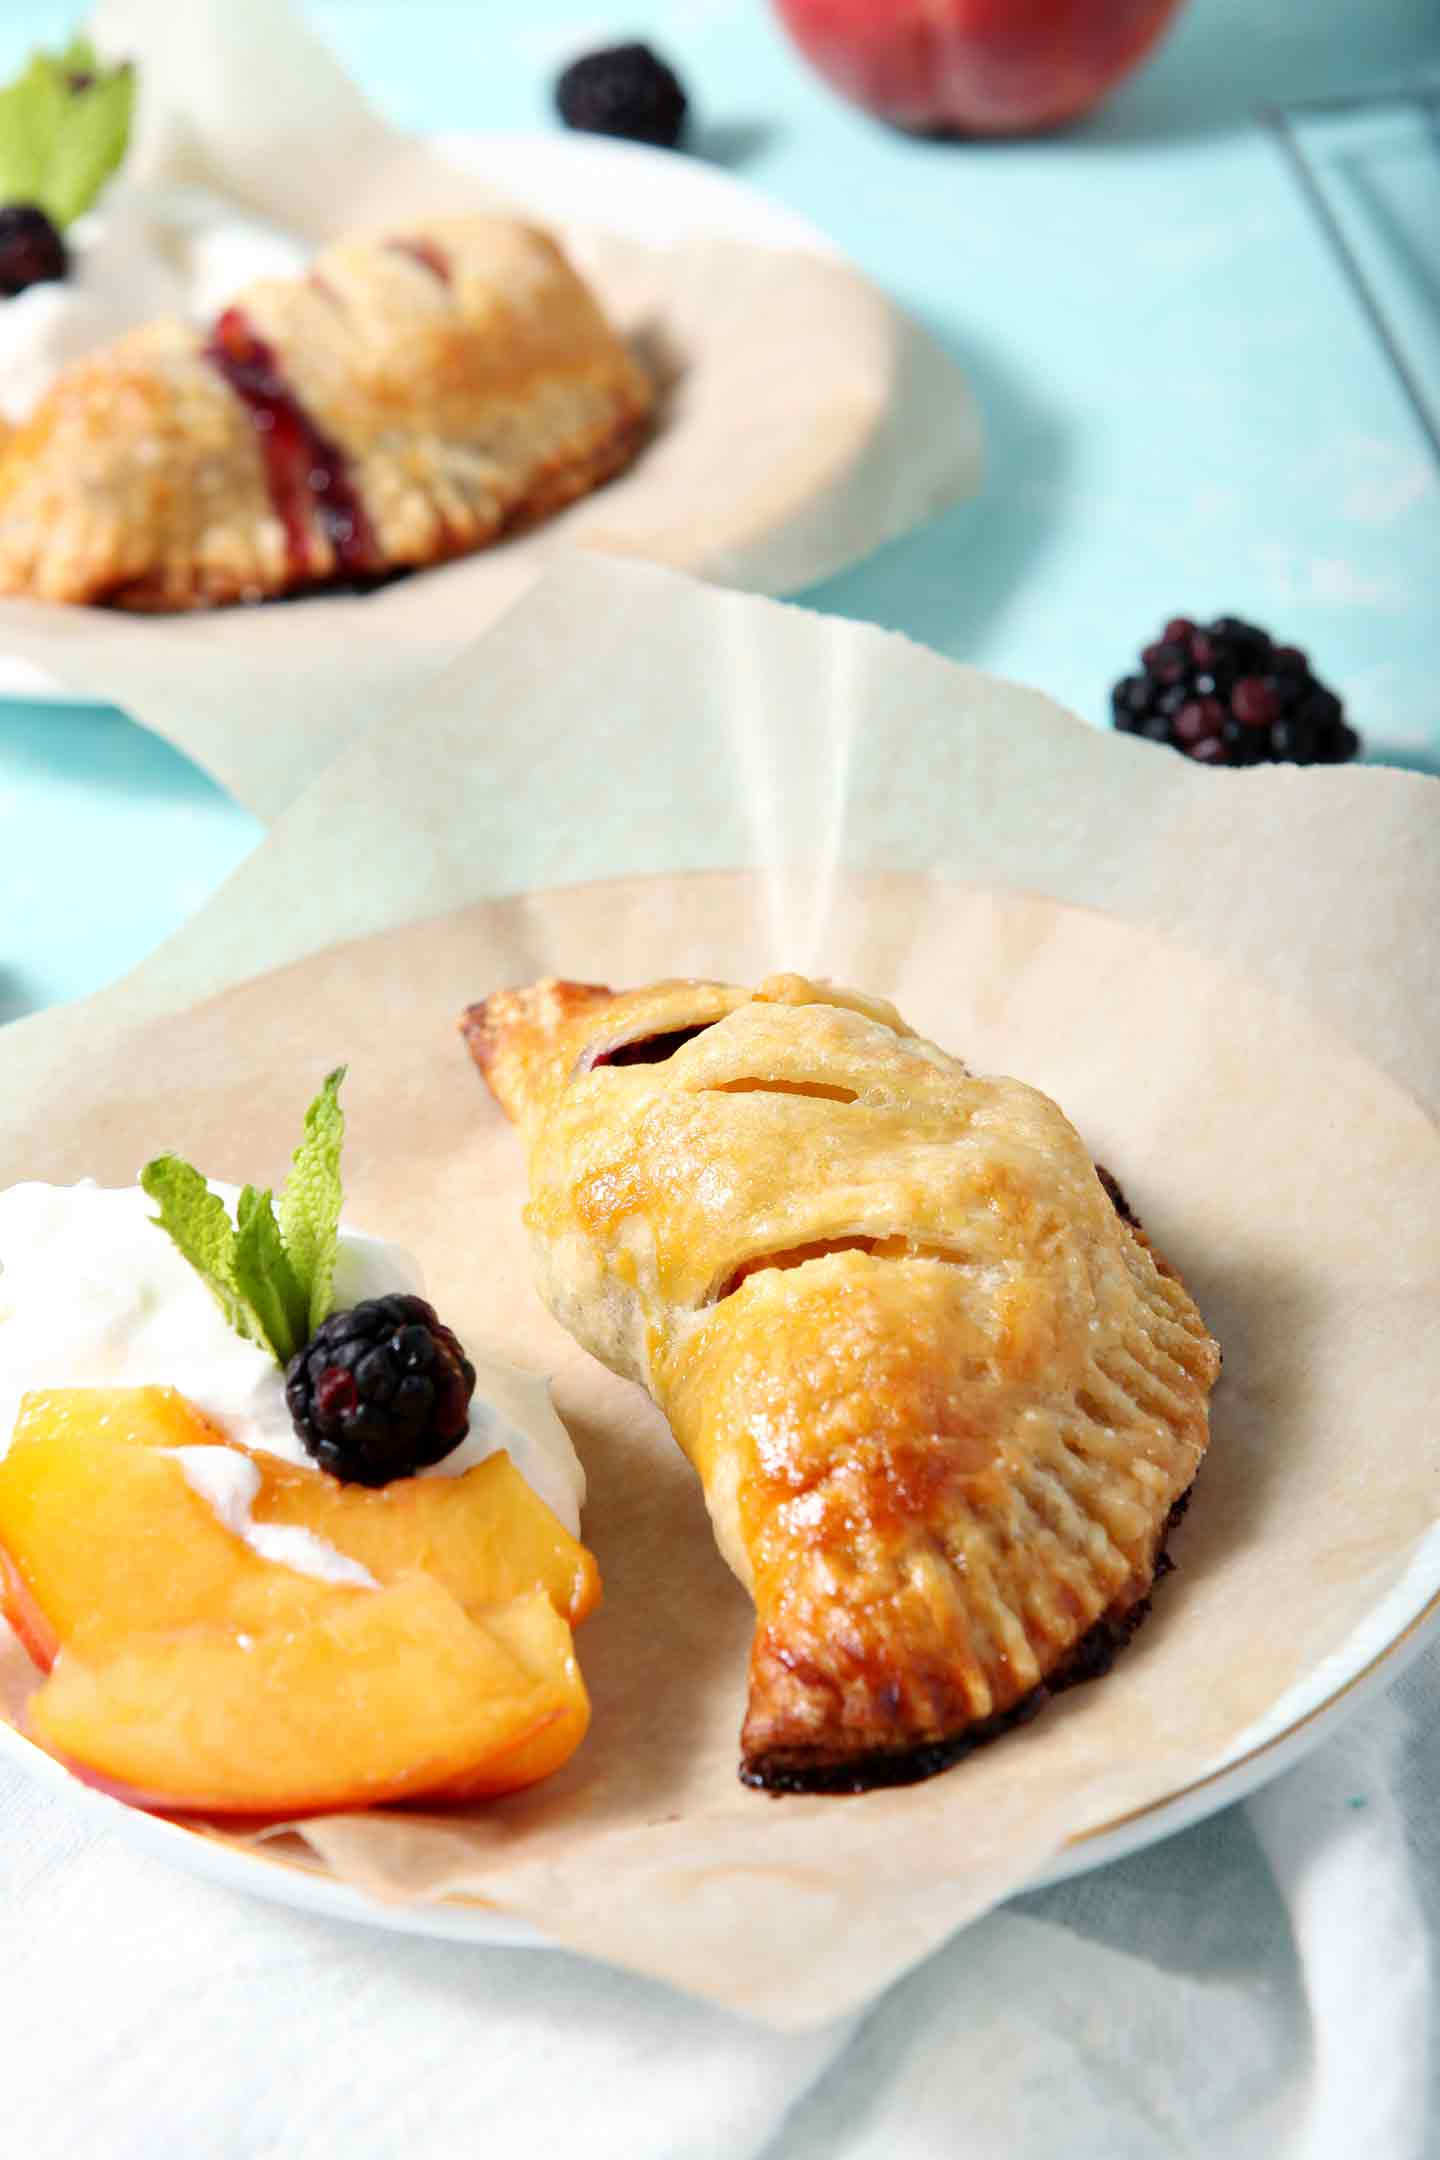 A Blackberry Peach Hand Pie sits on a plate with Bourbon Whipped Cream, peach slices and blackberries